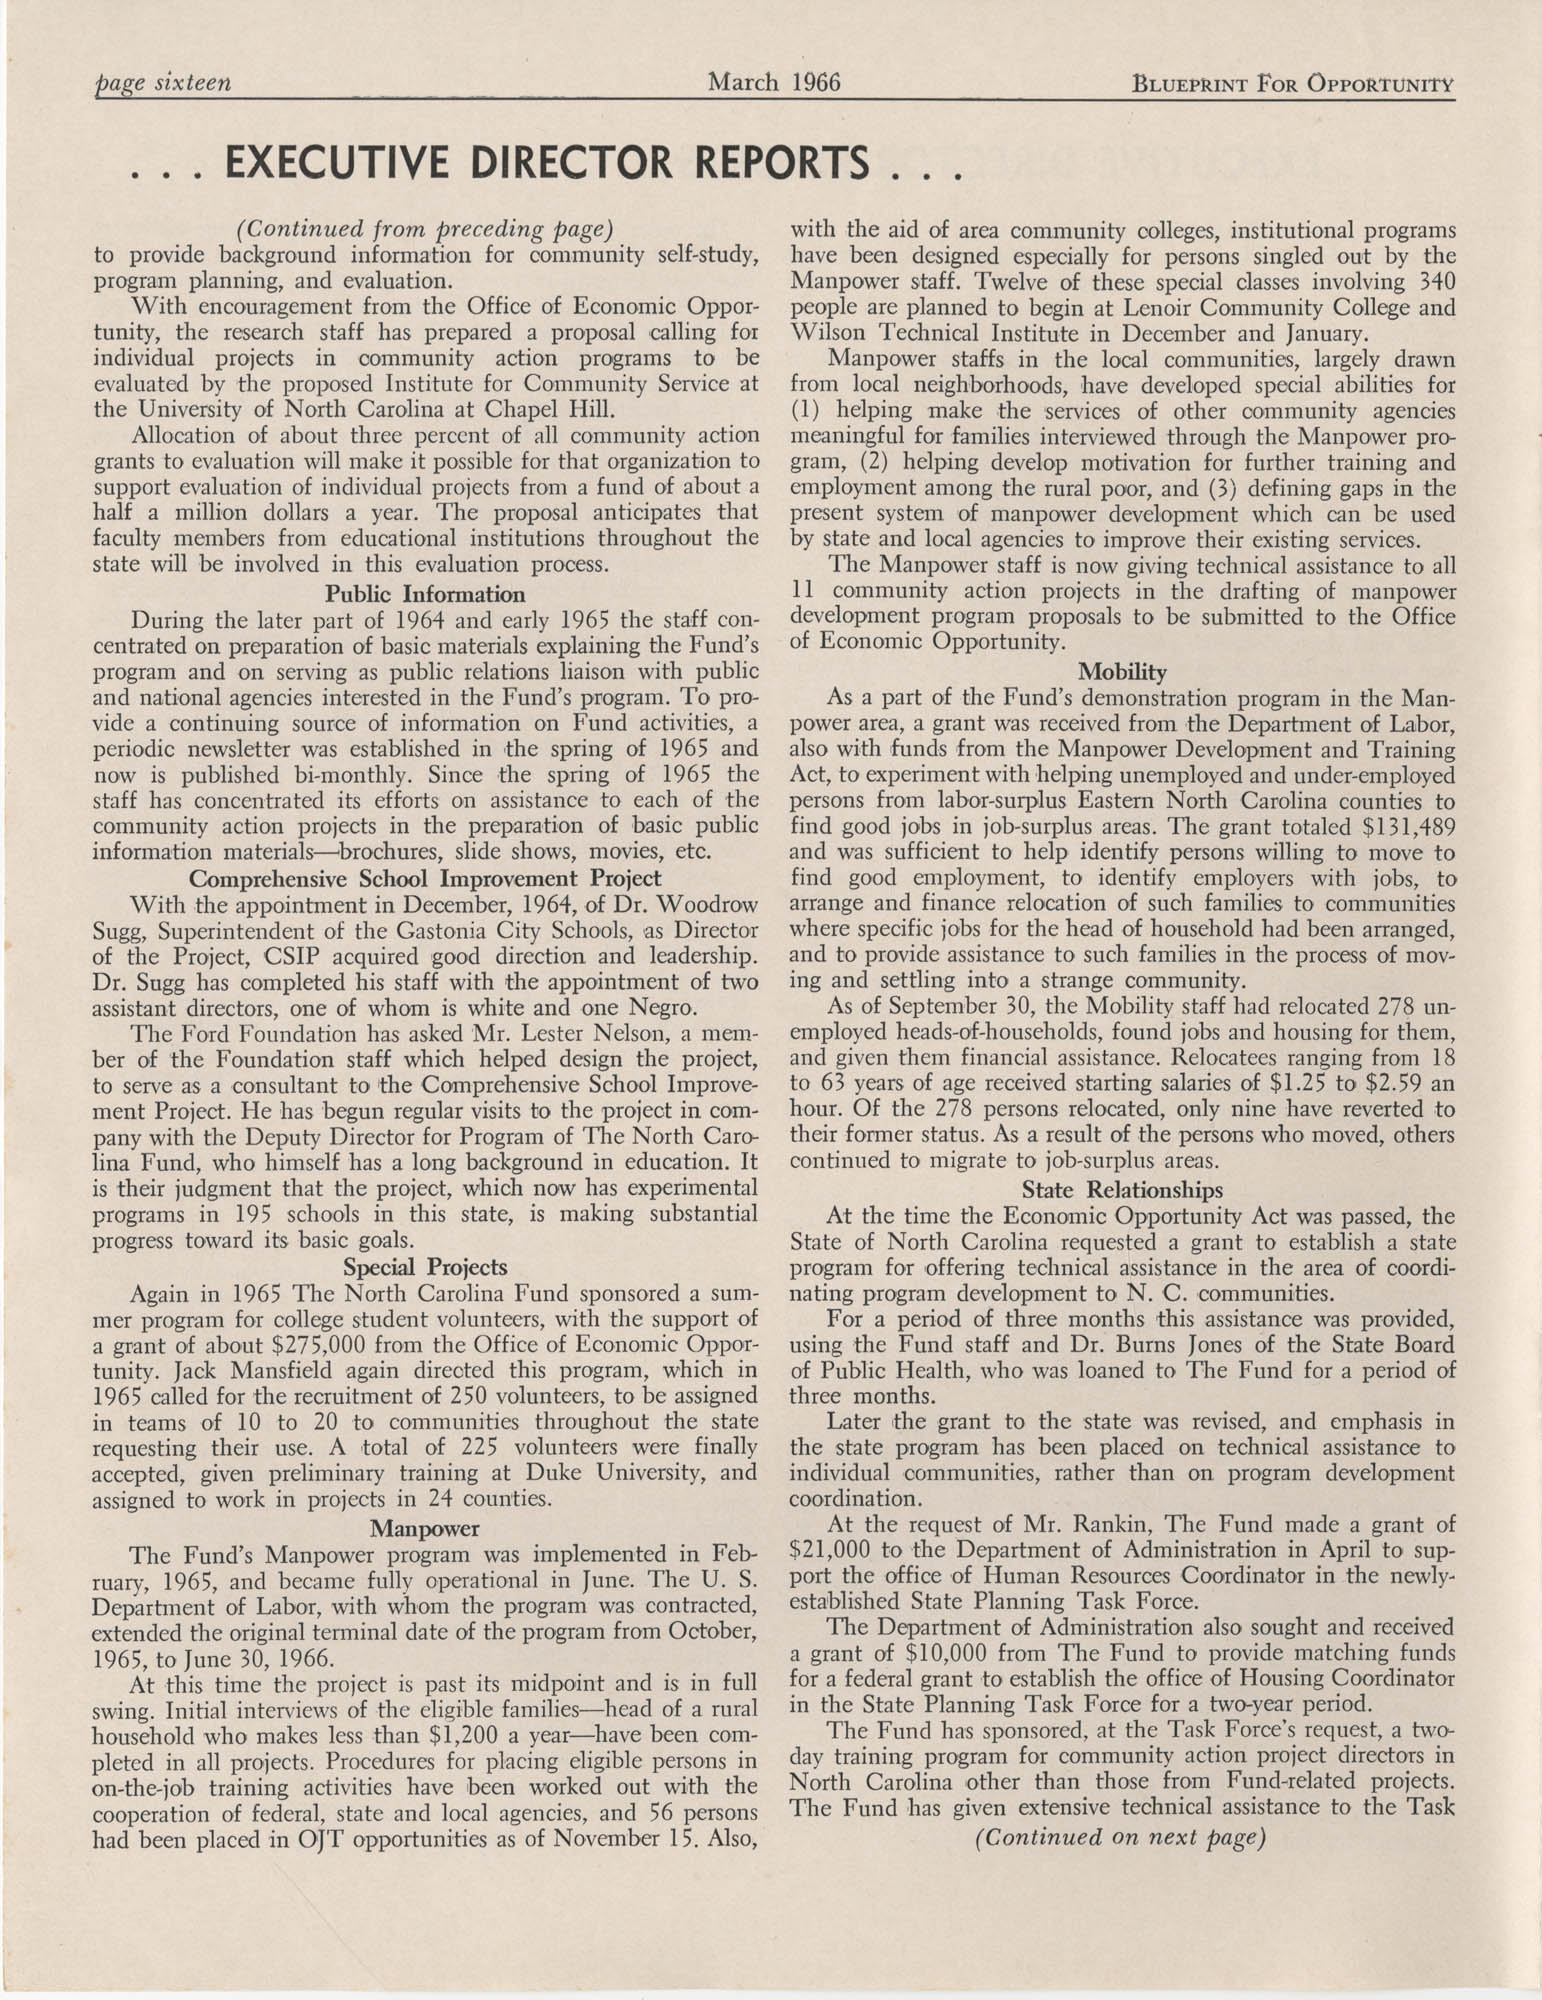 Blueprint for Opportunity, Vol. 2, No. 1, Page 16